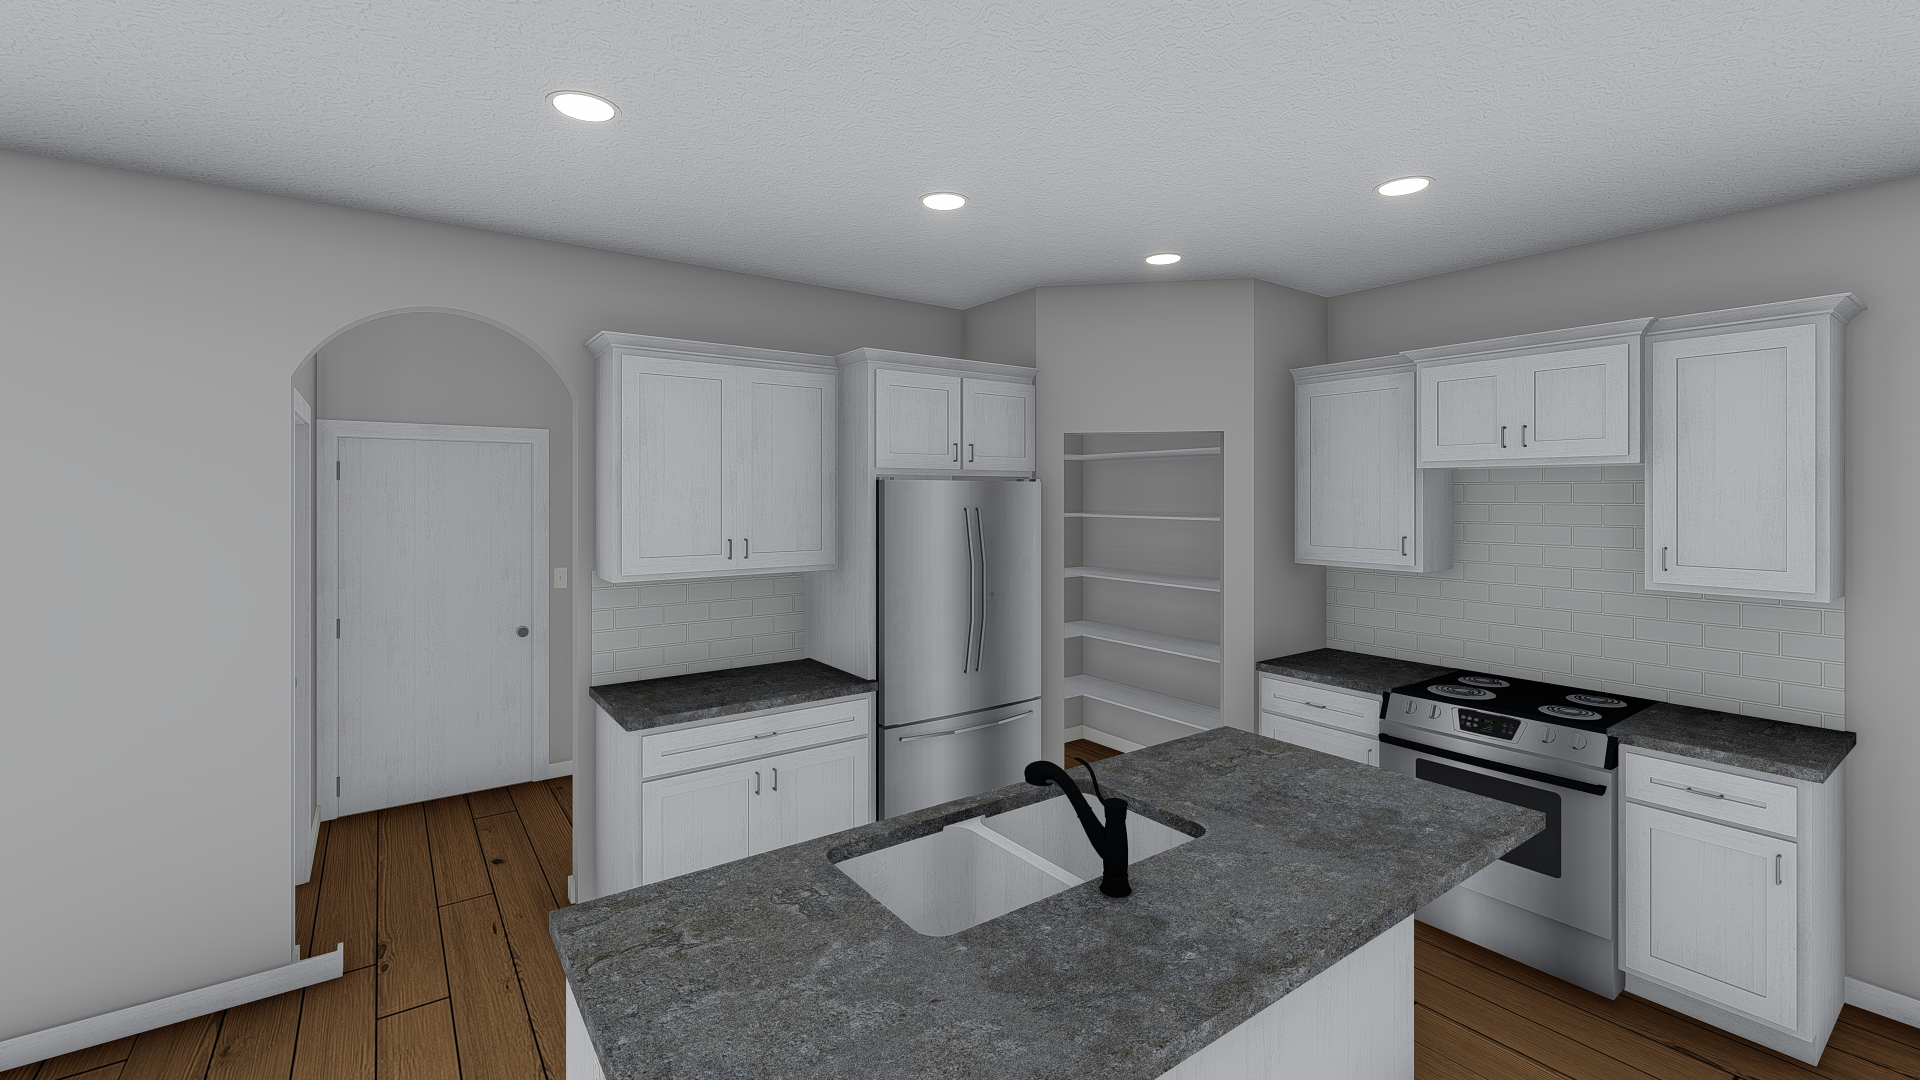 VA-103498 Render_Kitchen